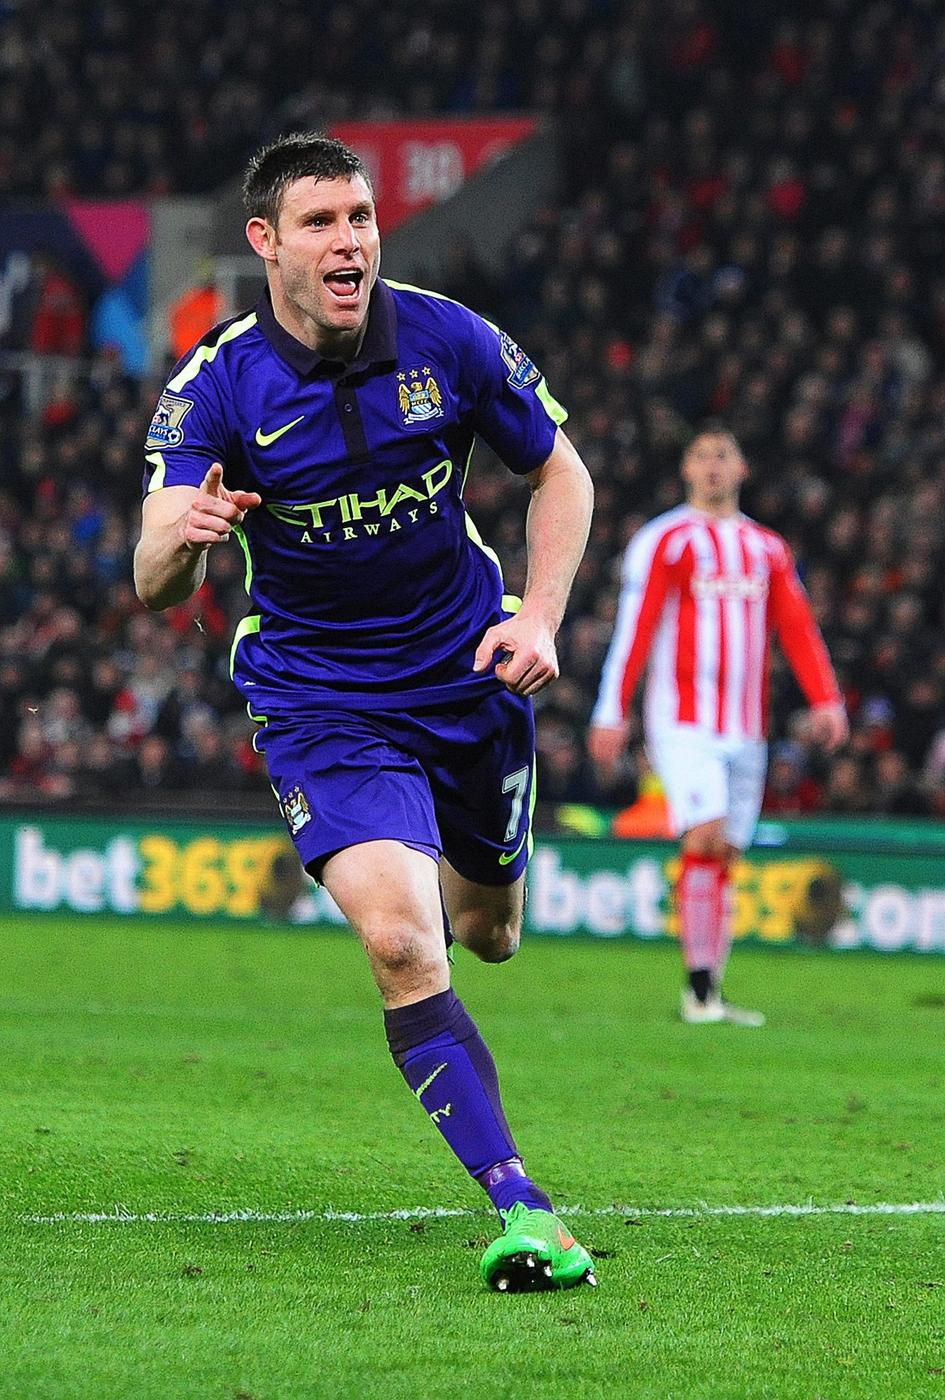 James Milner transfer is good news for Liverpool but he's not a replacement for Steven Gerrard